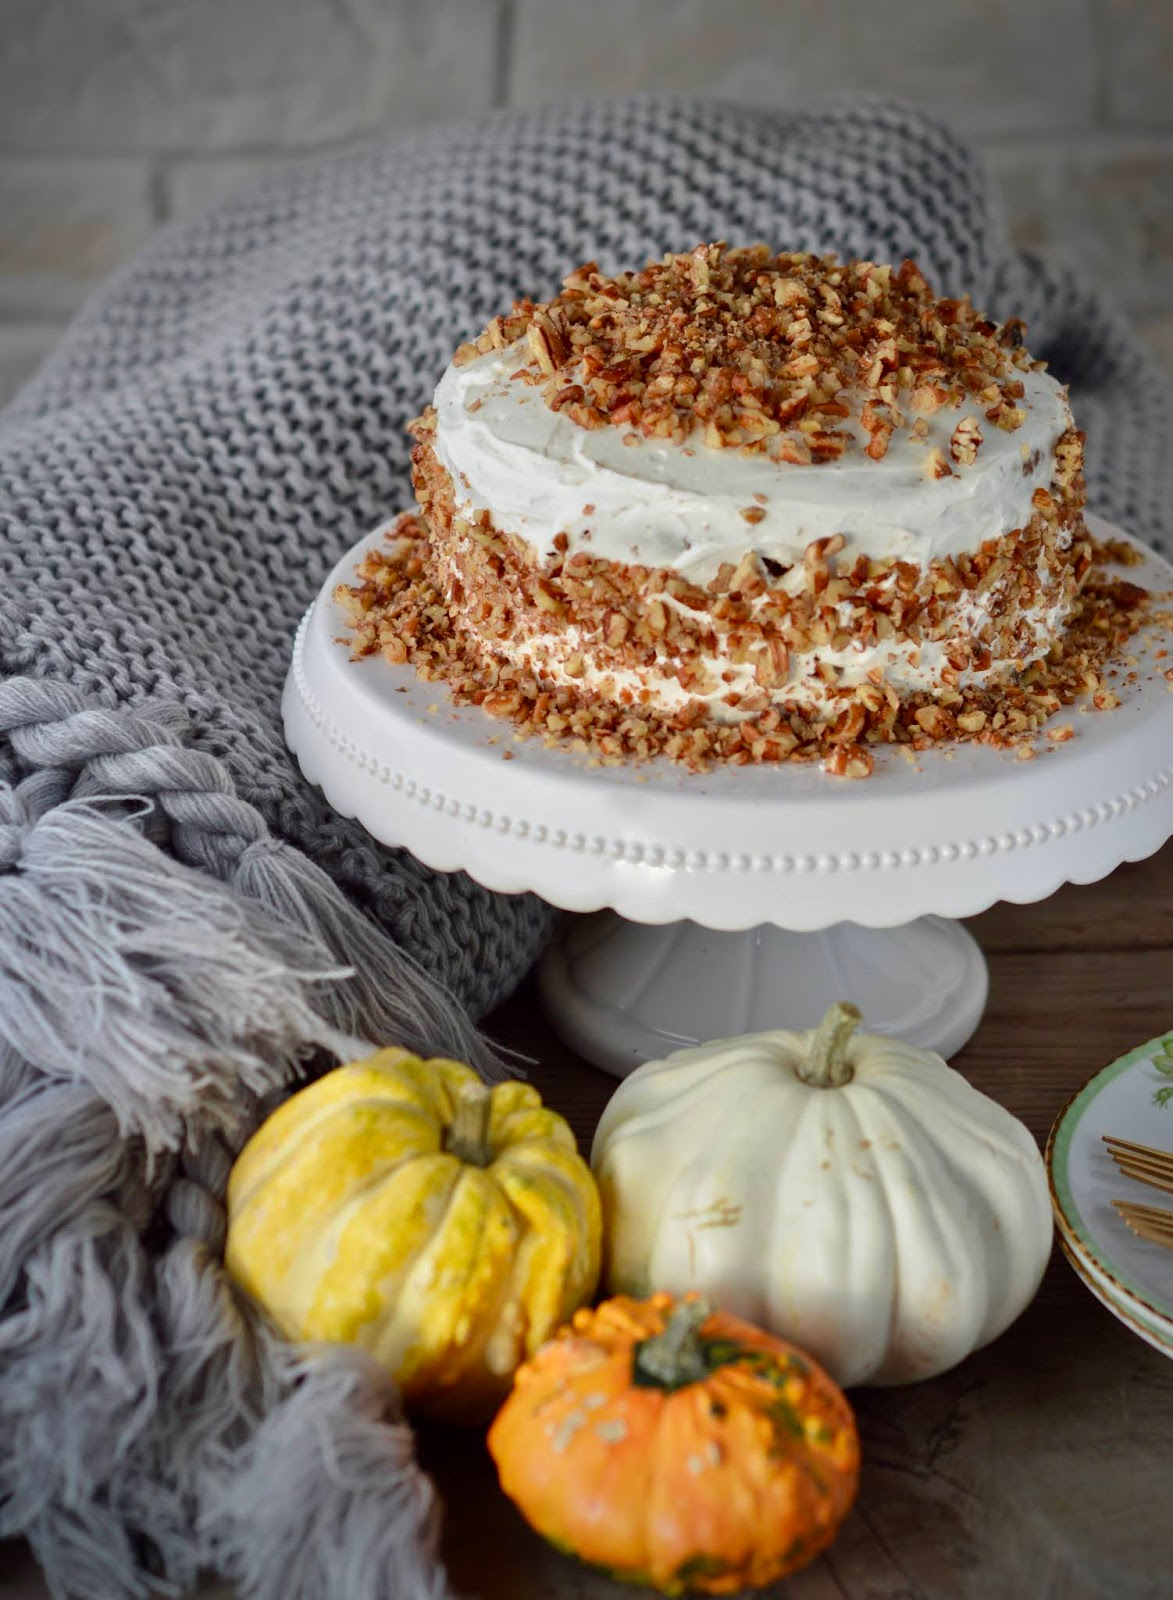 AMERICAN CARROT CAKE (HEALTHY & GLUTENFREE VERSION)